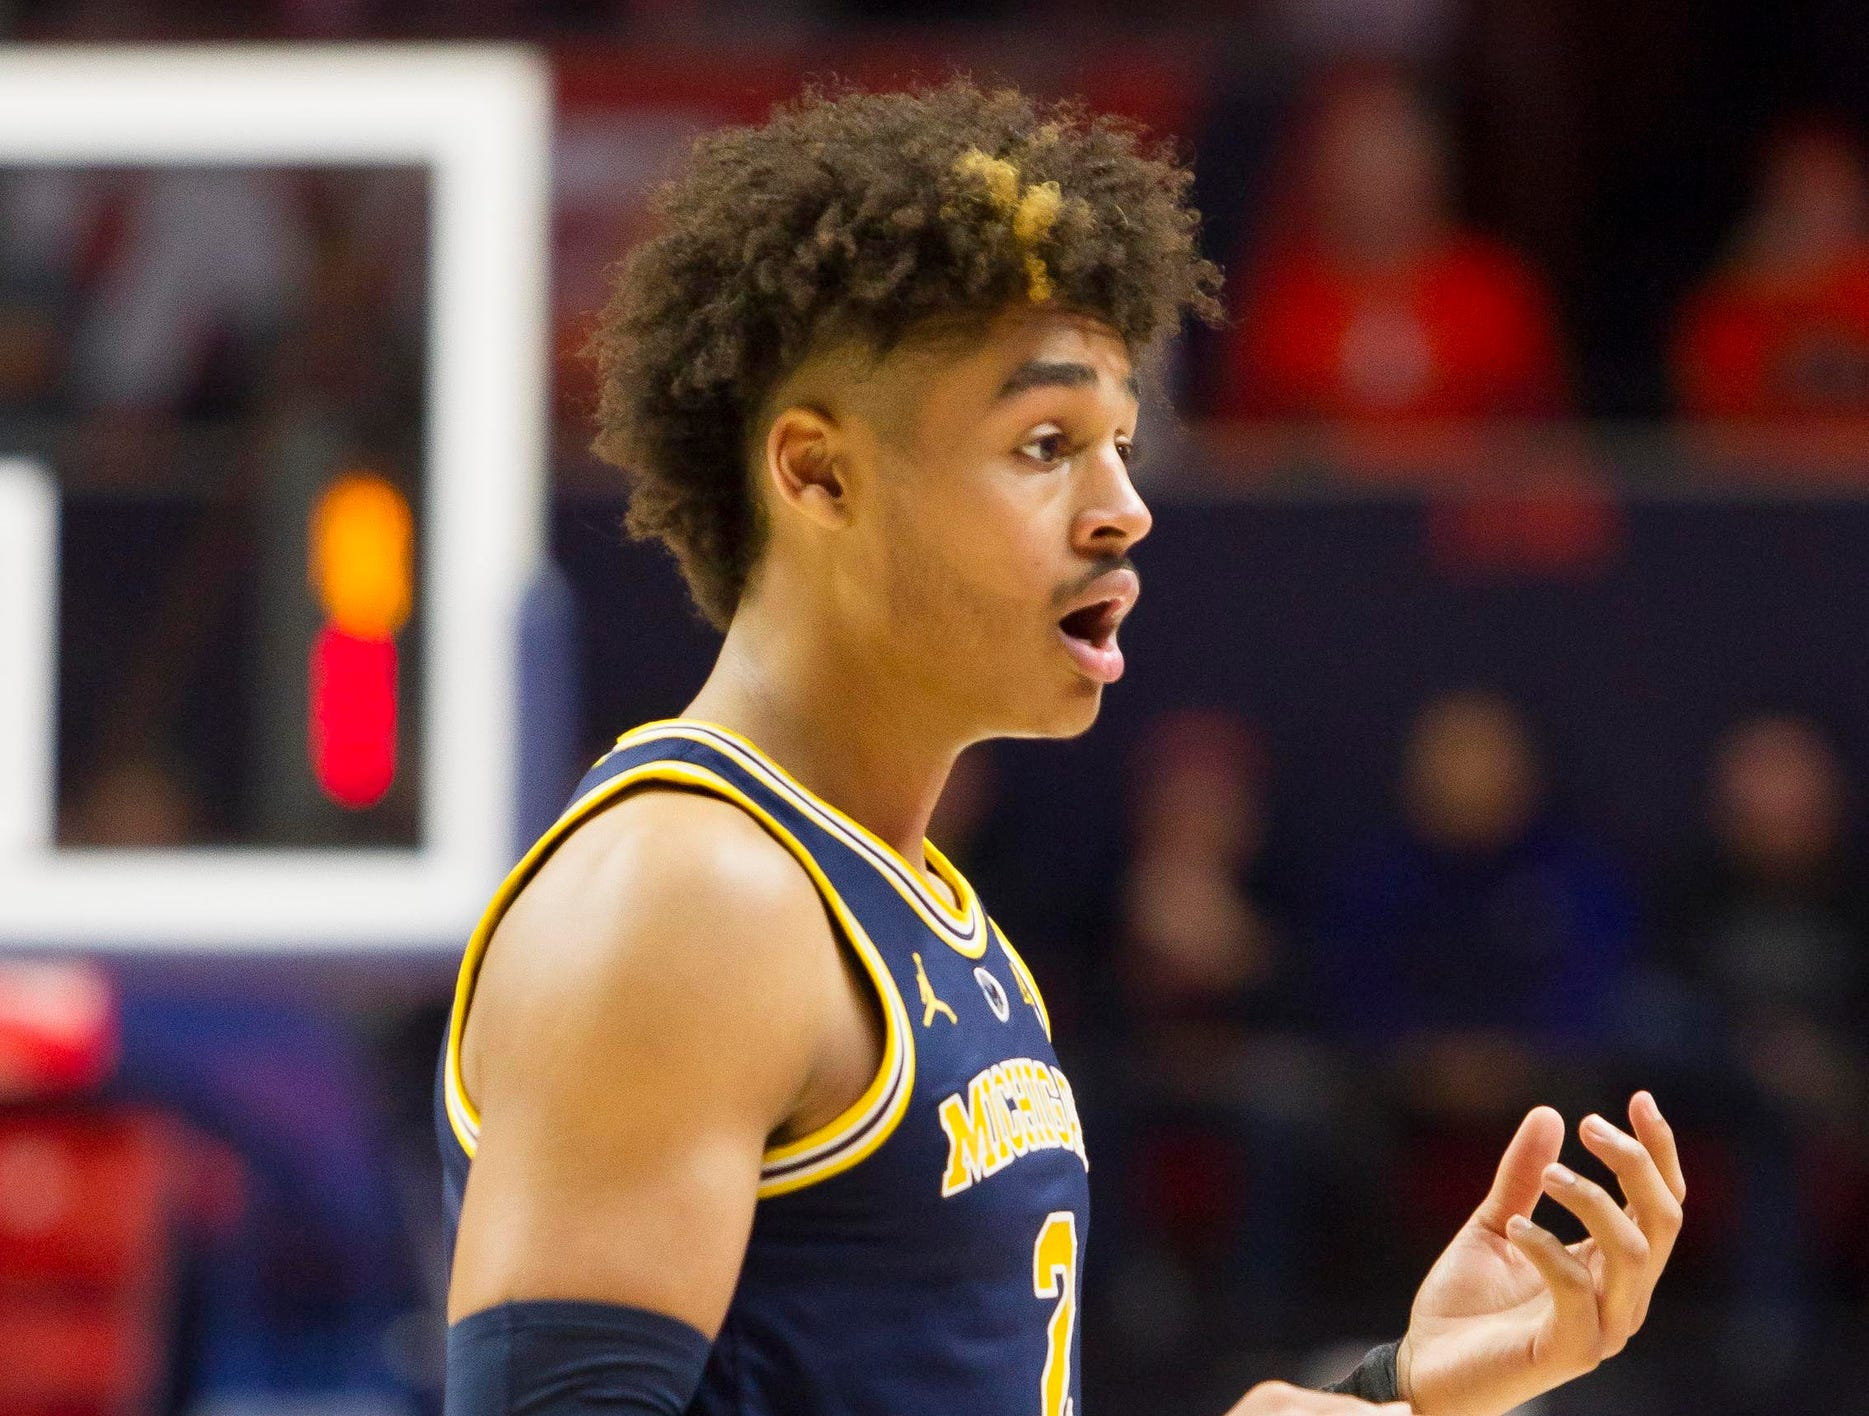 Michigan Wolverines guard Jordan Poole (2) reacts to a foul during the first half against the Illinois Fighting Illini  at State Farm Center on January 10, 2019 in Champaign, Illinois.